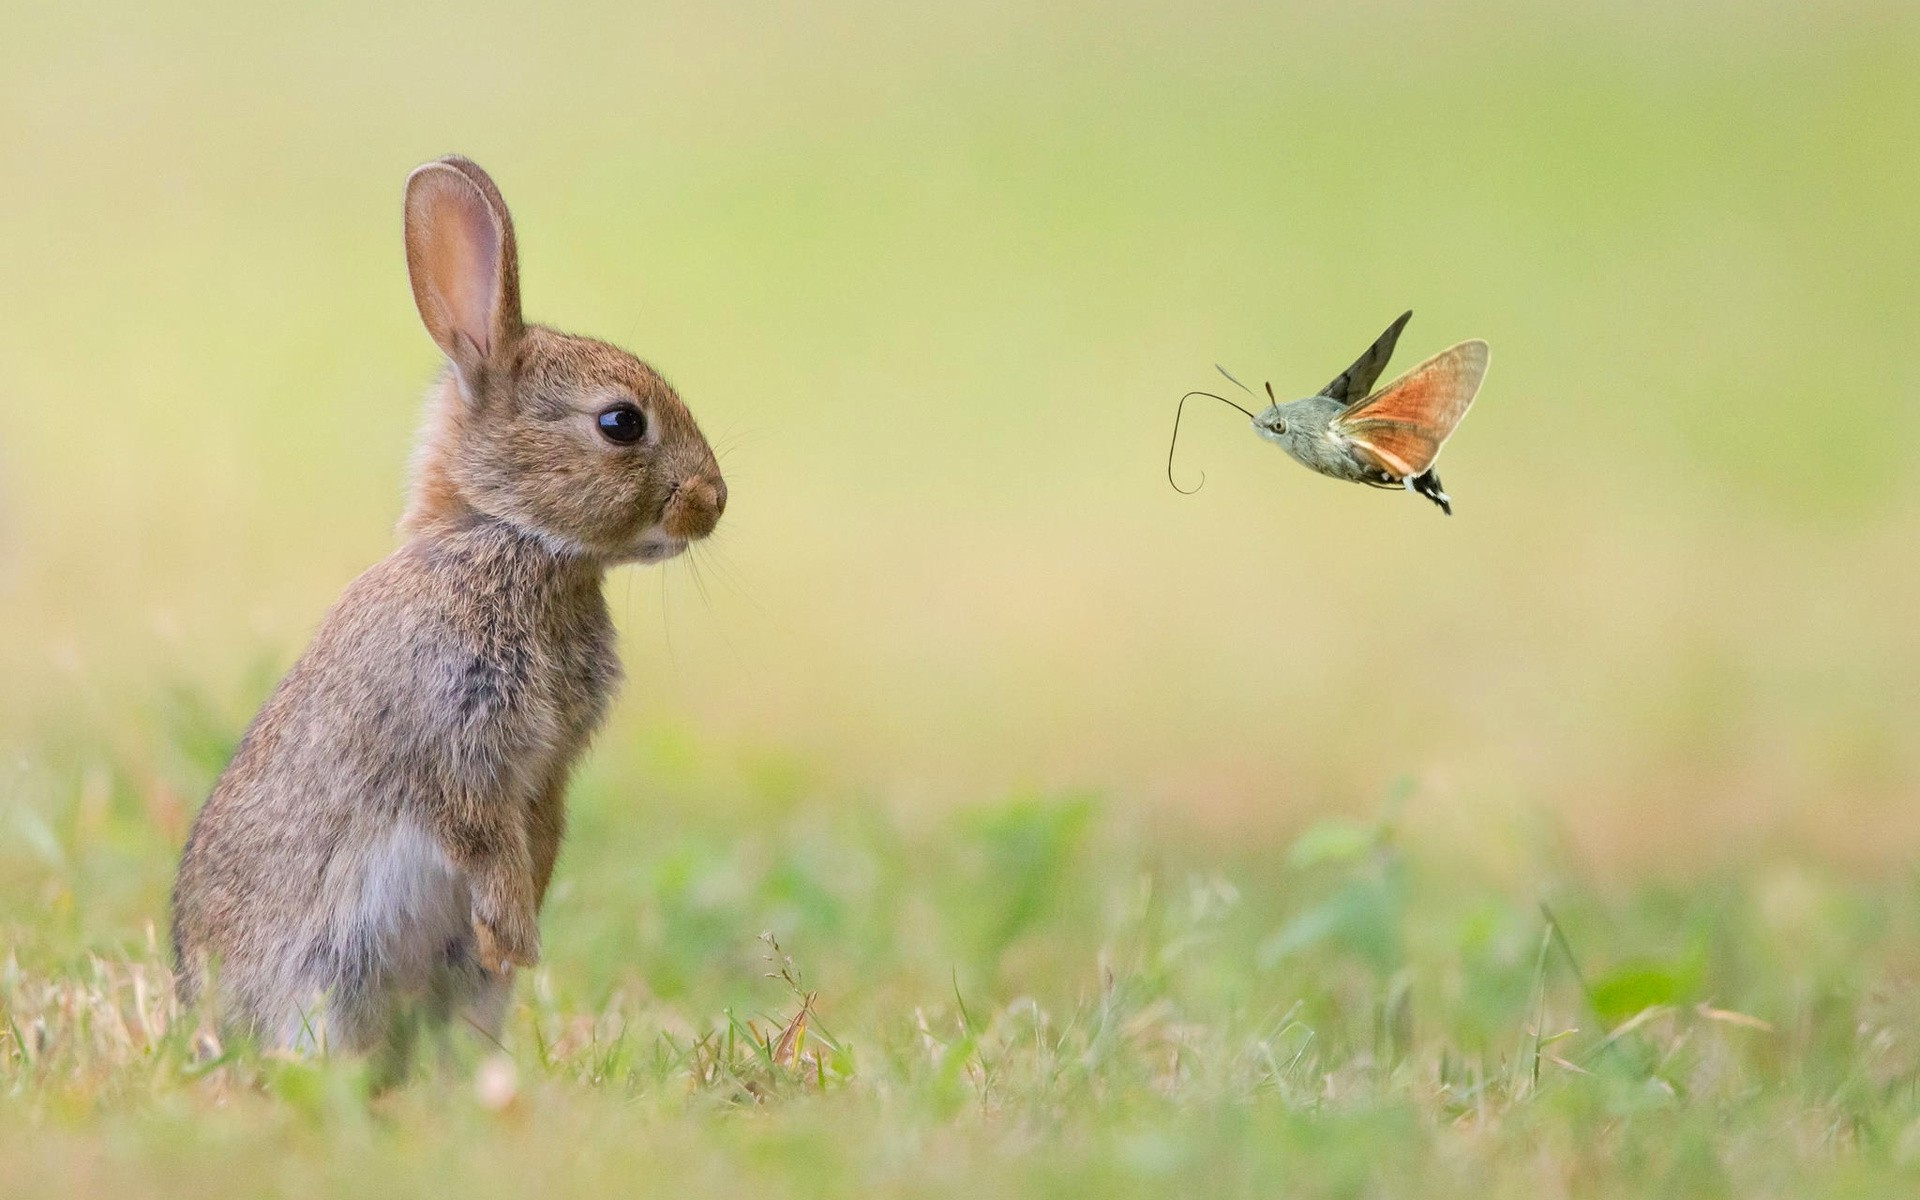 Bunny And Hummingbird Hawk Moth Full HD Wallpaper Background